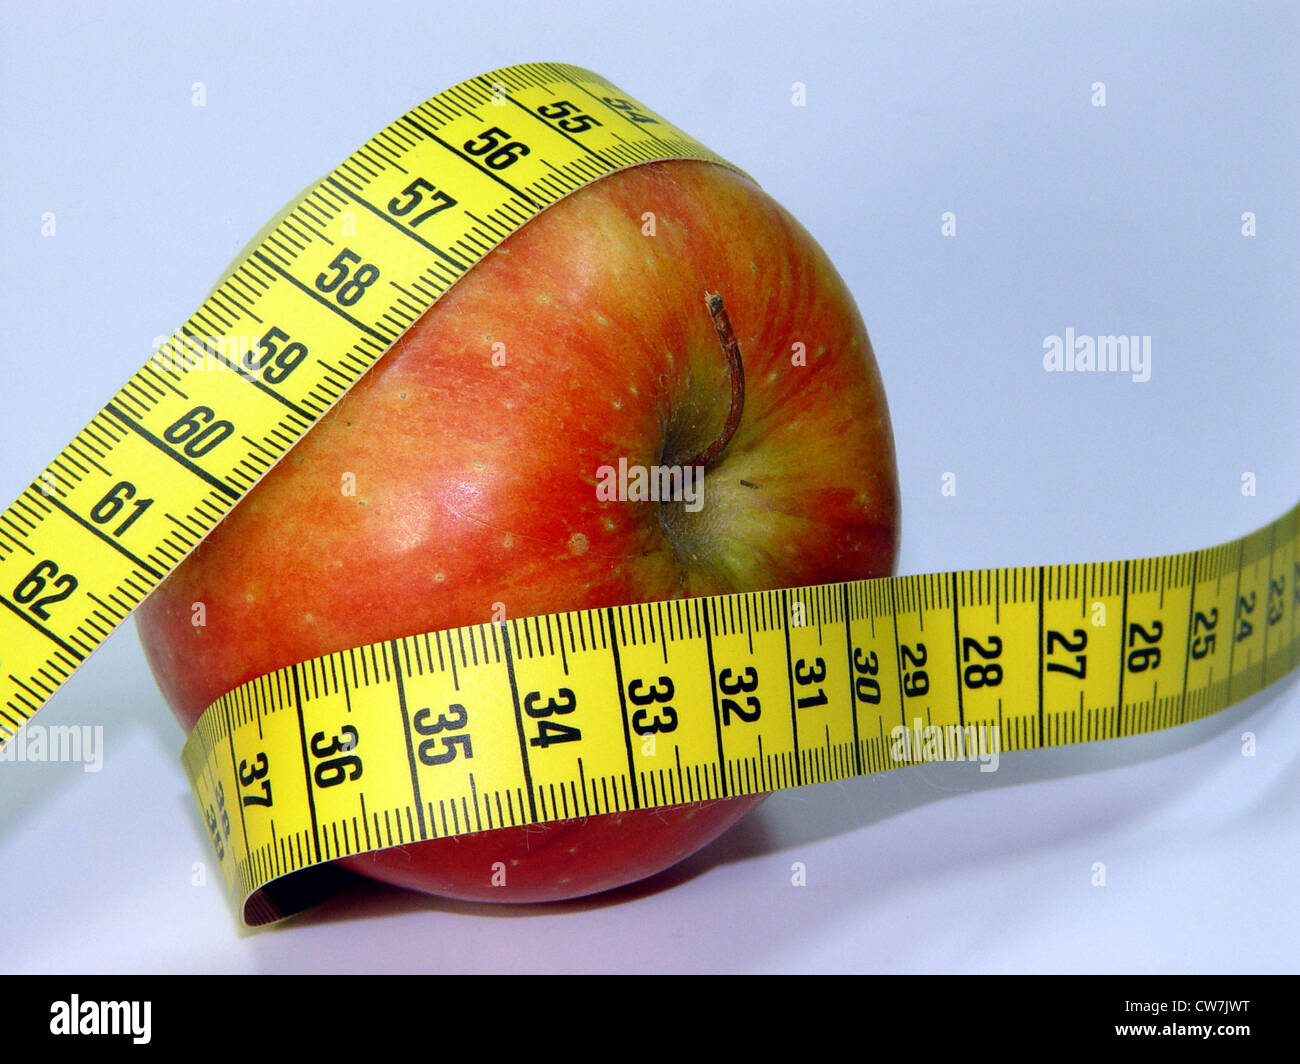 Symbol apple with measuring tage - Stock Image